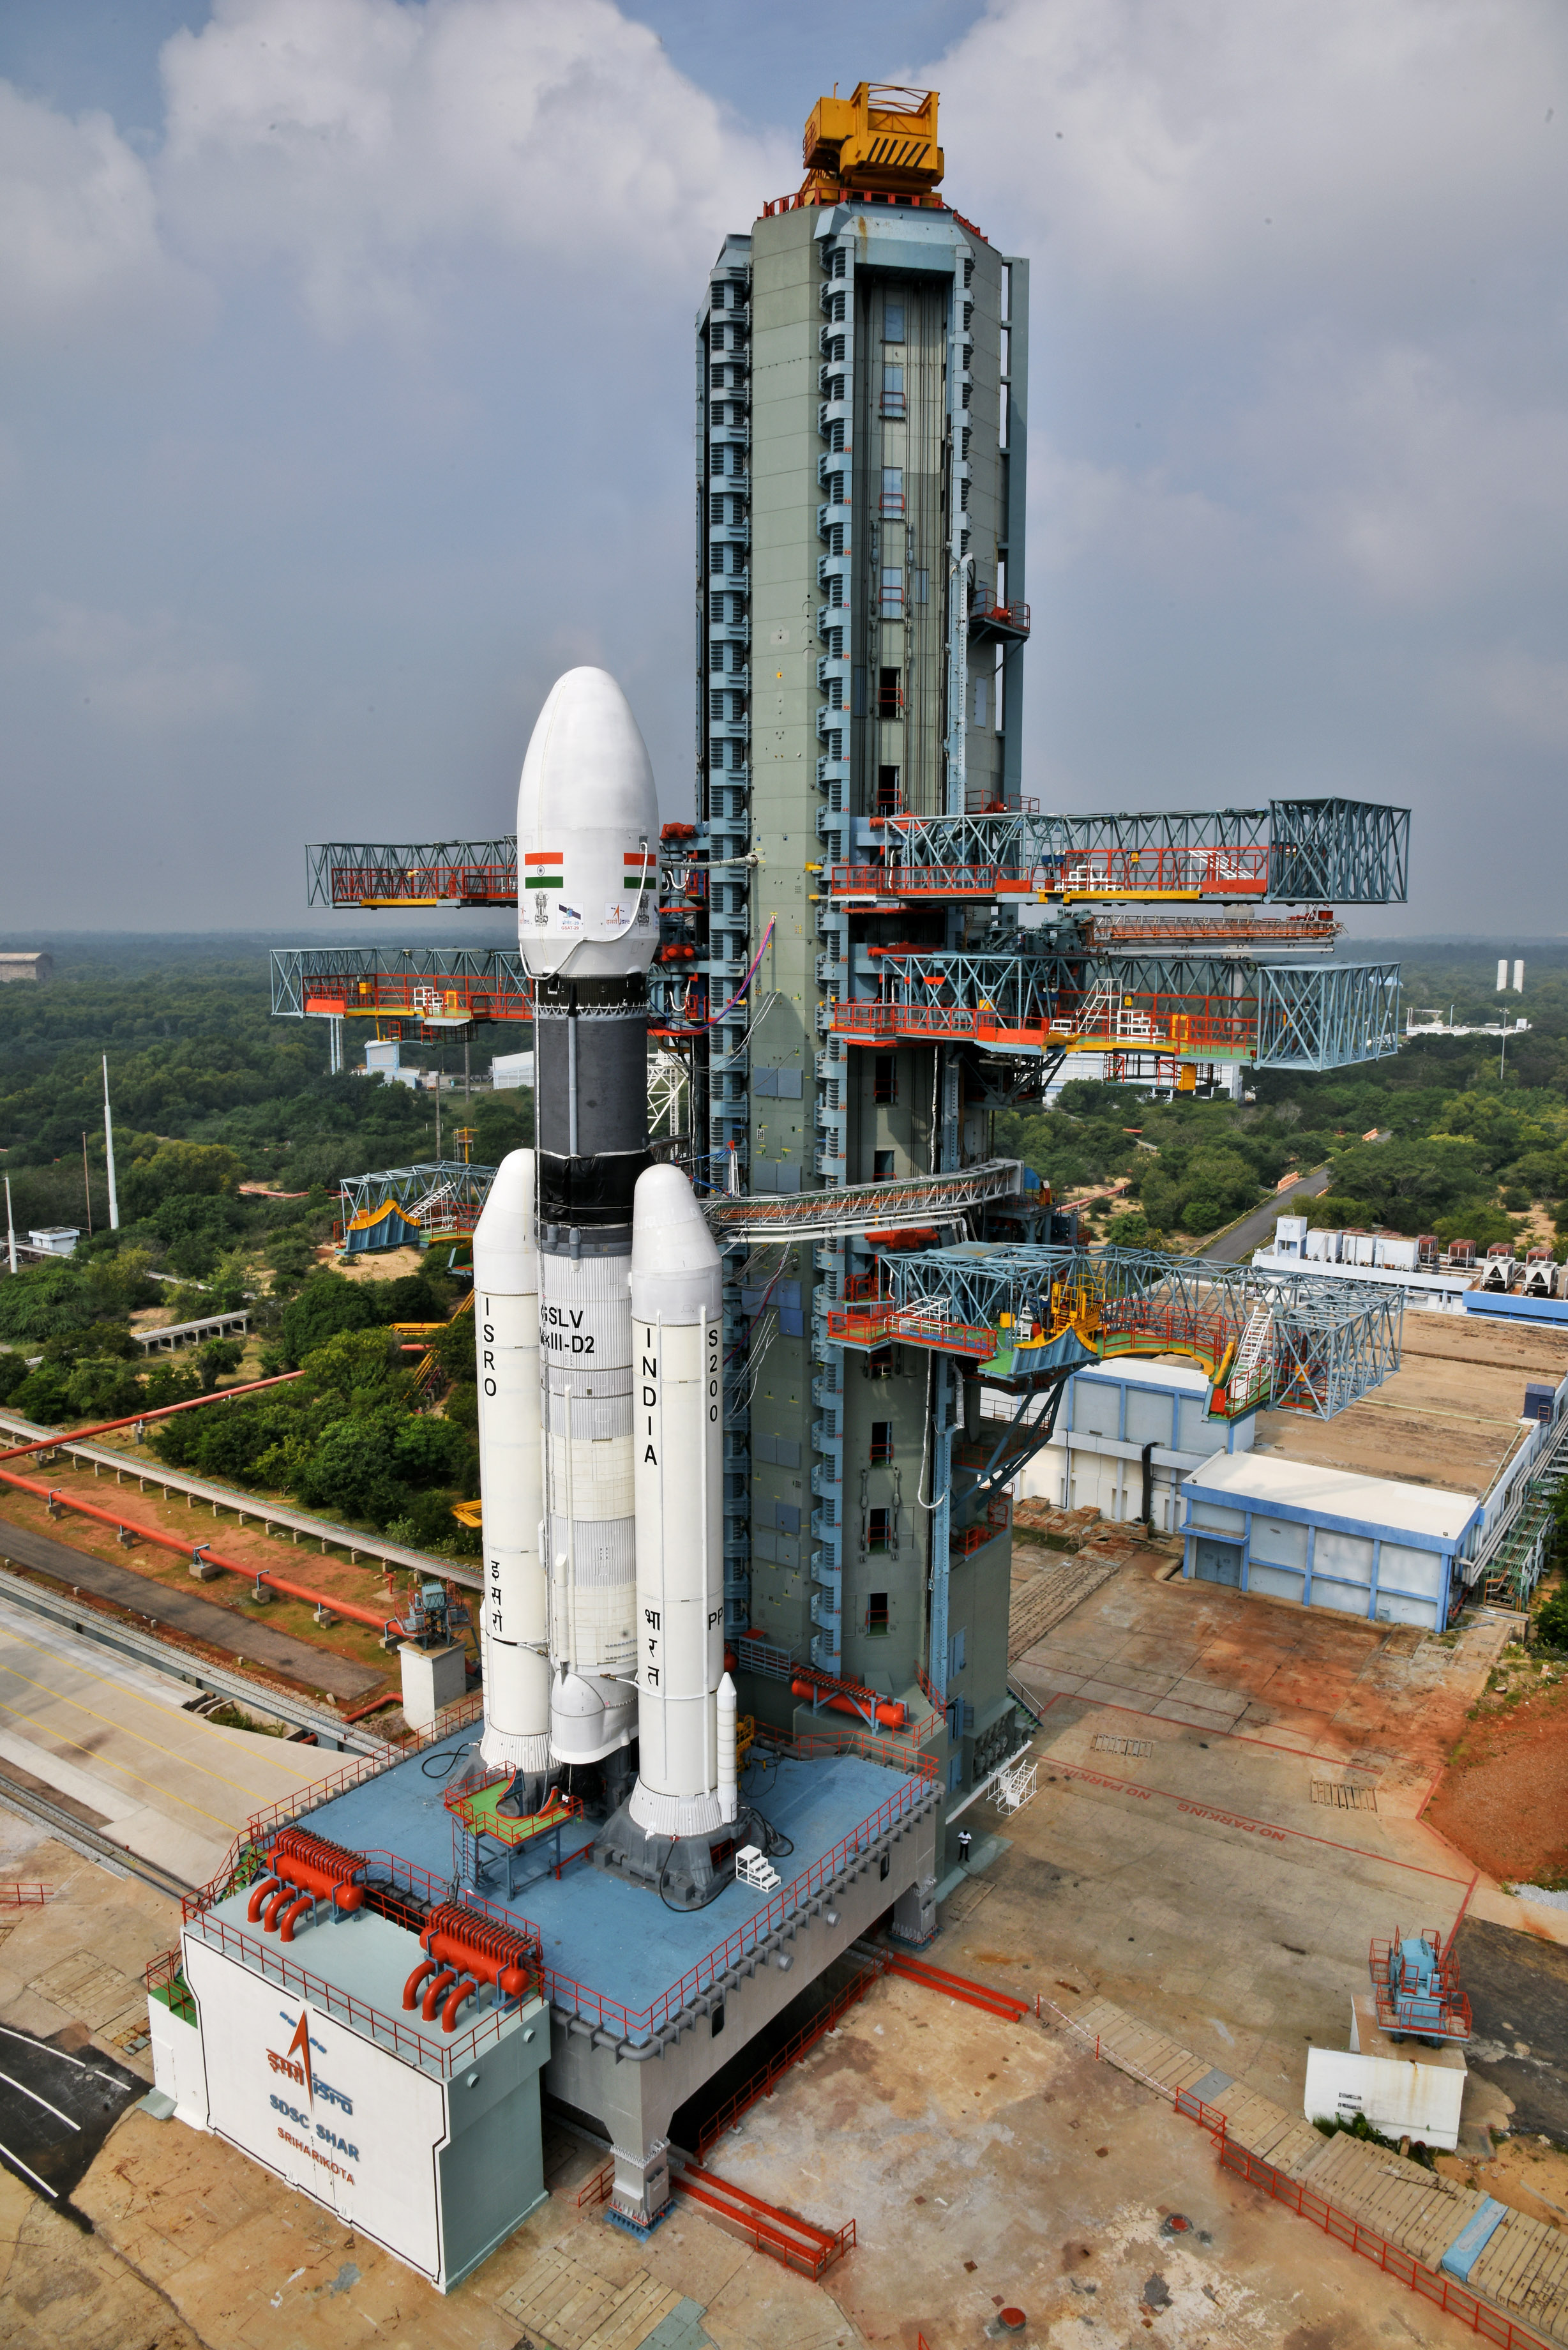 856b537dc7760 The countdown for the launch of GSLV Mk III-D2 / GSAT-29 Mission from  Satish Dhawan Space Centre SHAR, Sriharikota started today at 14:50 Hrs IST.